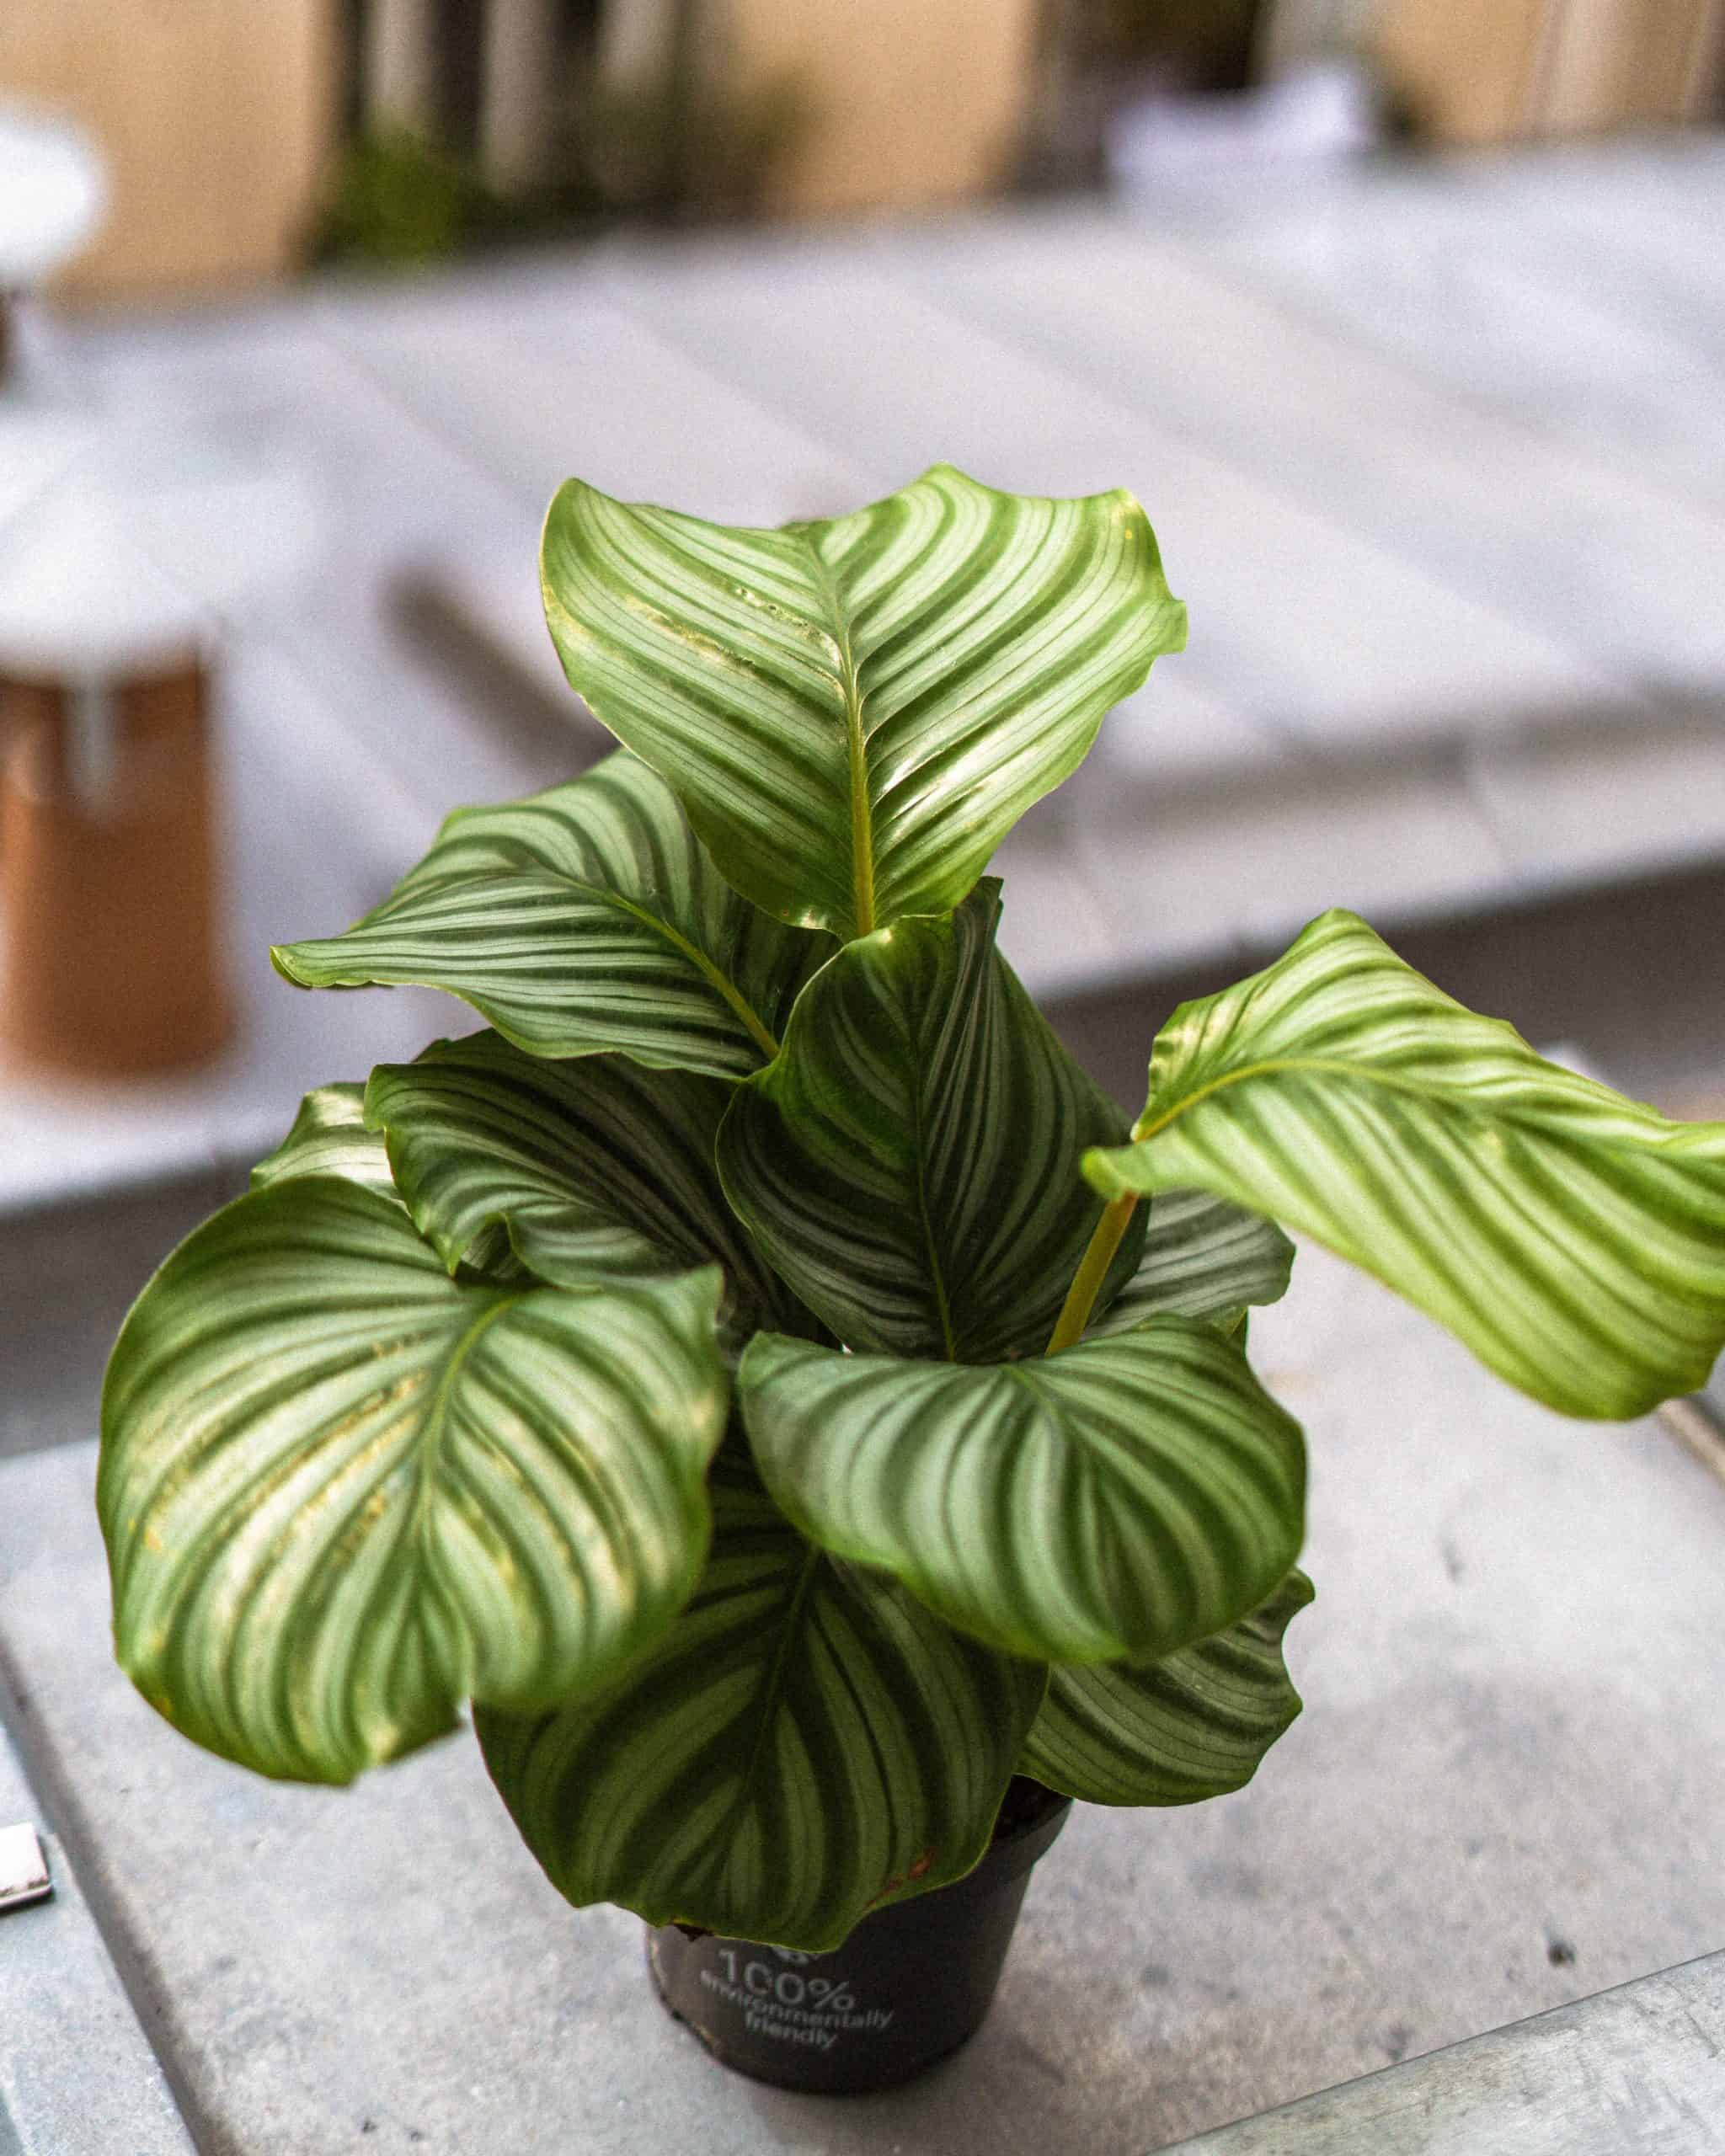 Calathea Orbifolia Care Guide: Propagation & Watering Tips